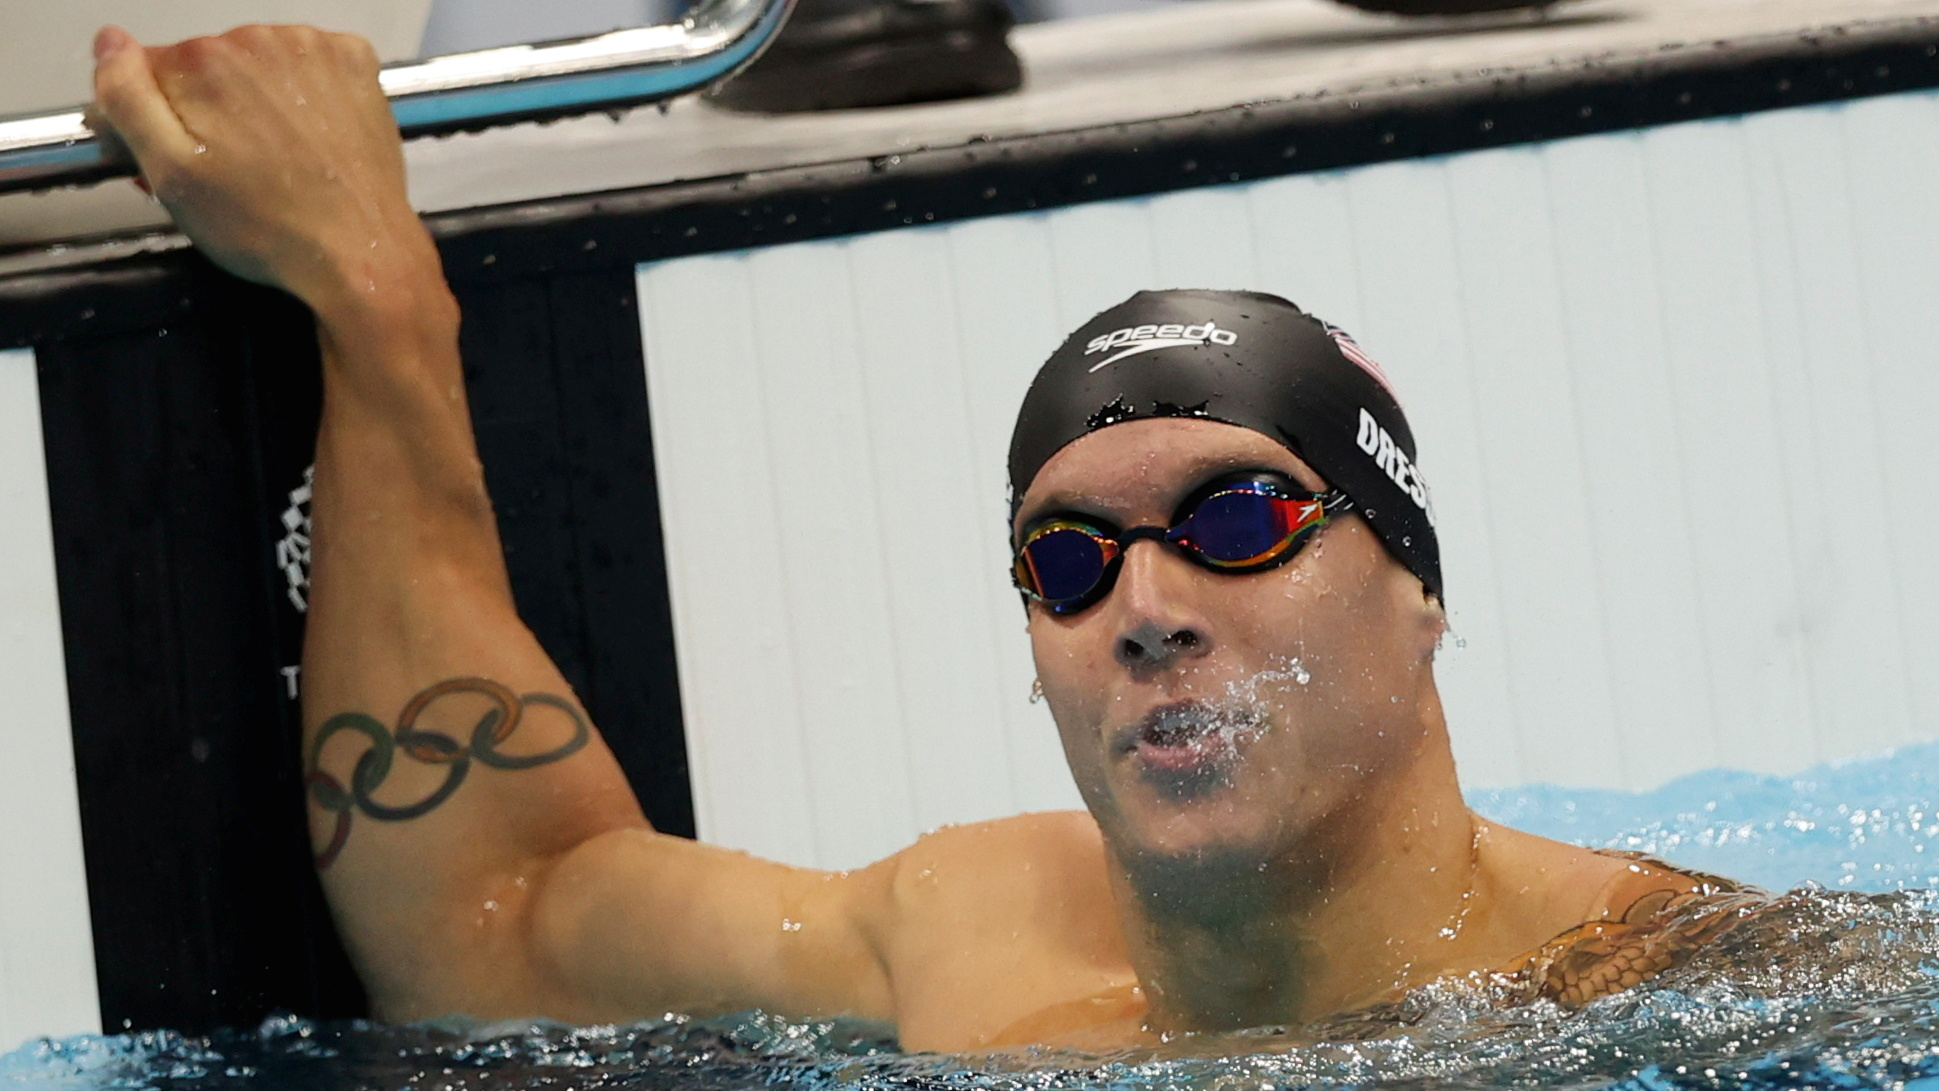 Tokyo 2020 Olympics - Swimming - Men's 100m Butterfly - Final - Tokyo Aquatics Centre - Tokyo, Japan - July 31, 2021. Caeleb Dressel of the United States reacts after setting a world record. REUTERS/Carl Recine